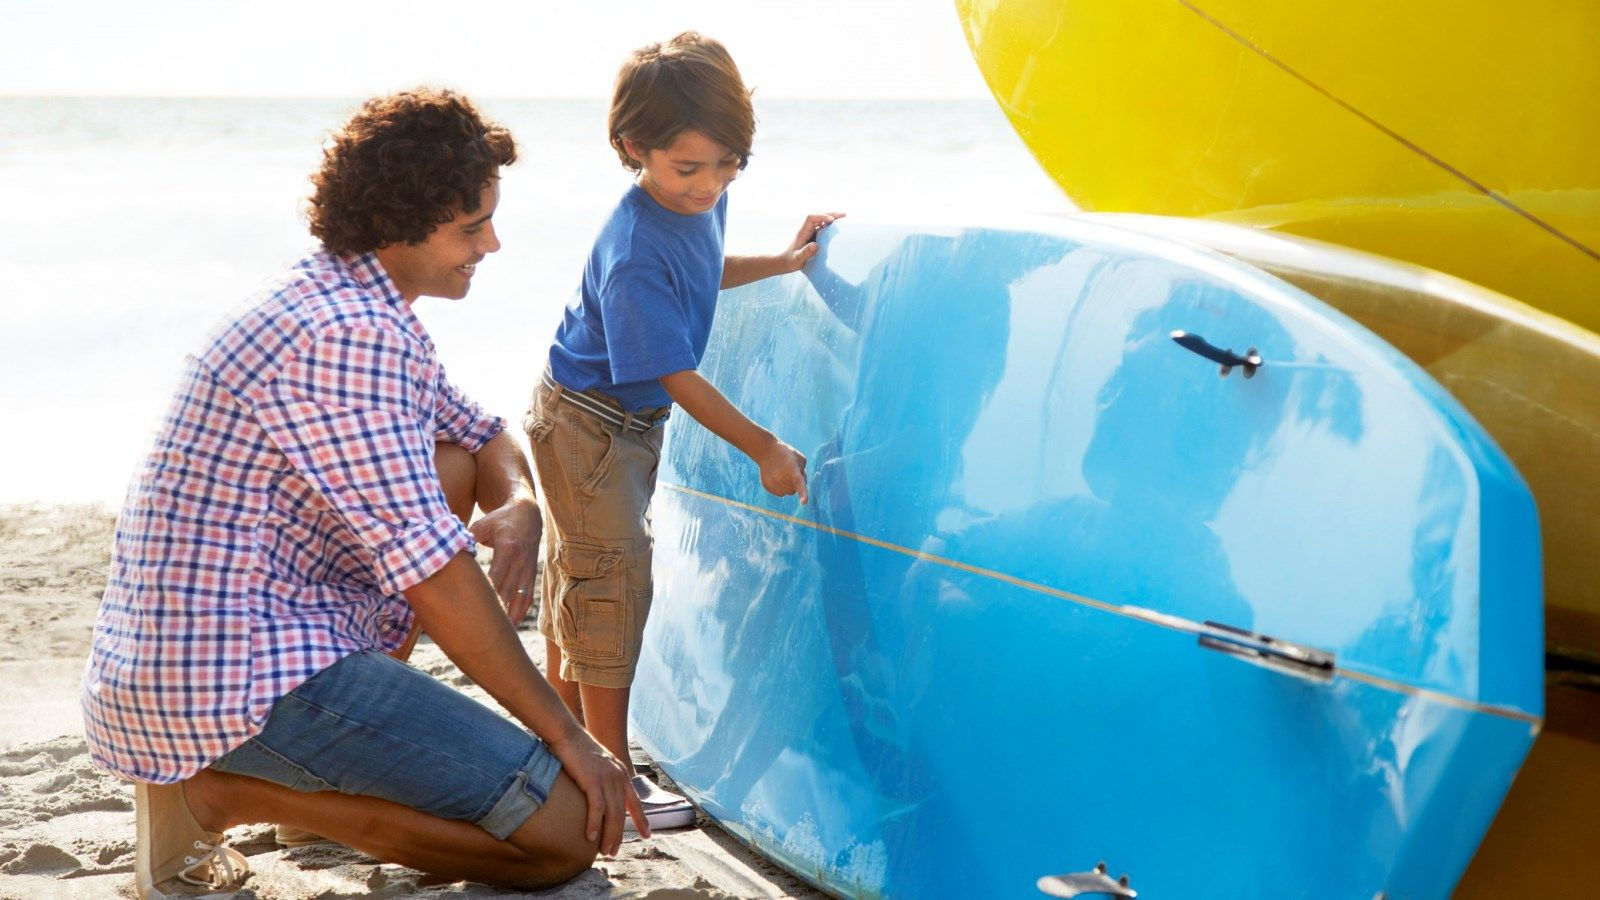 Sheraton Bay Point Resort - Family Activities